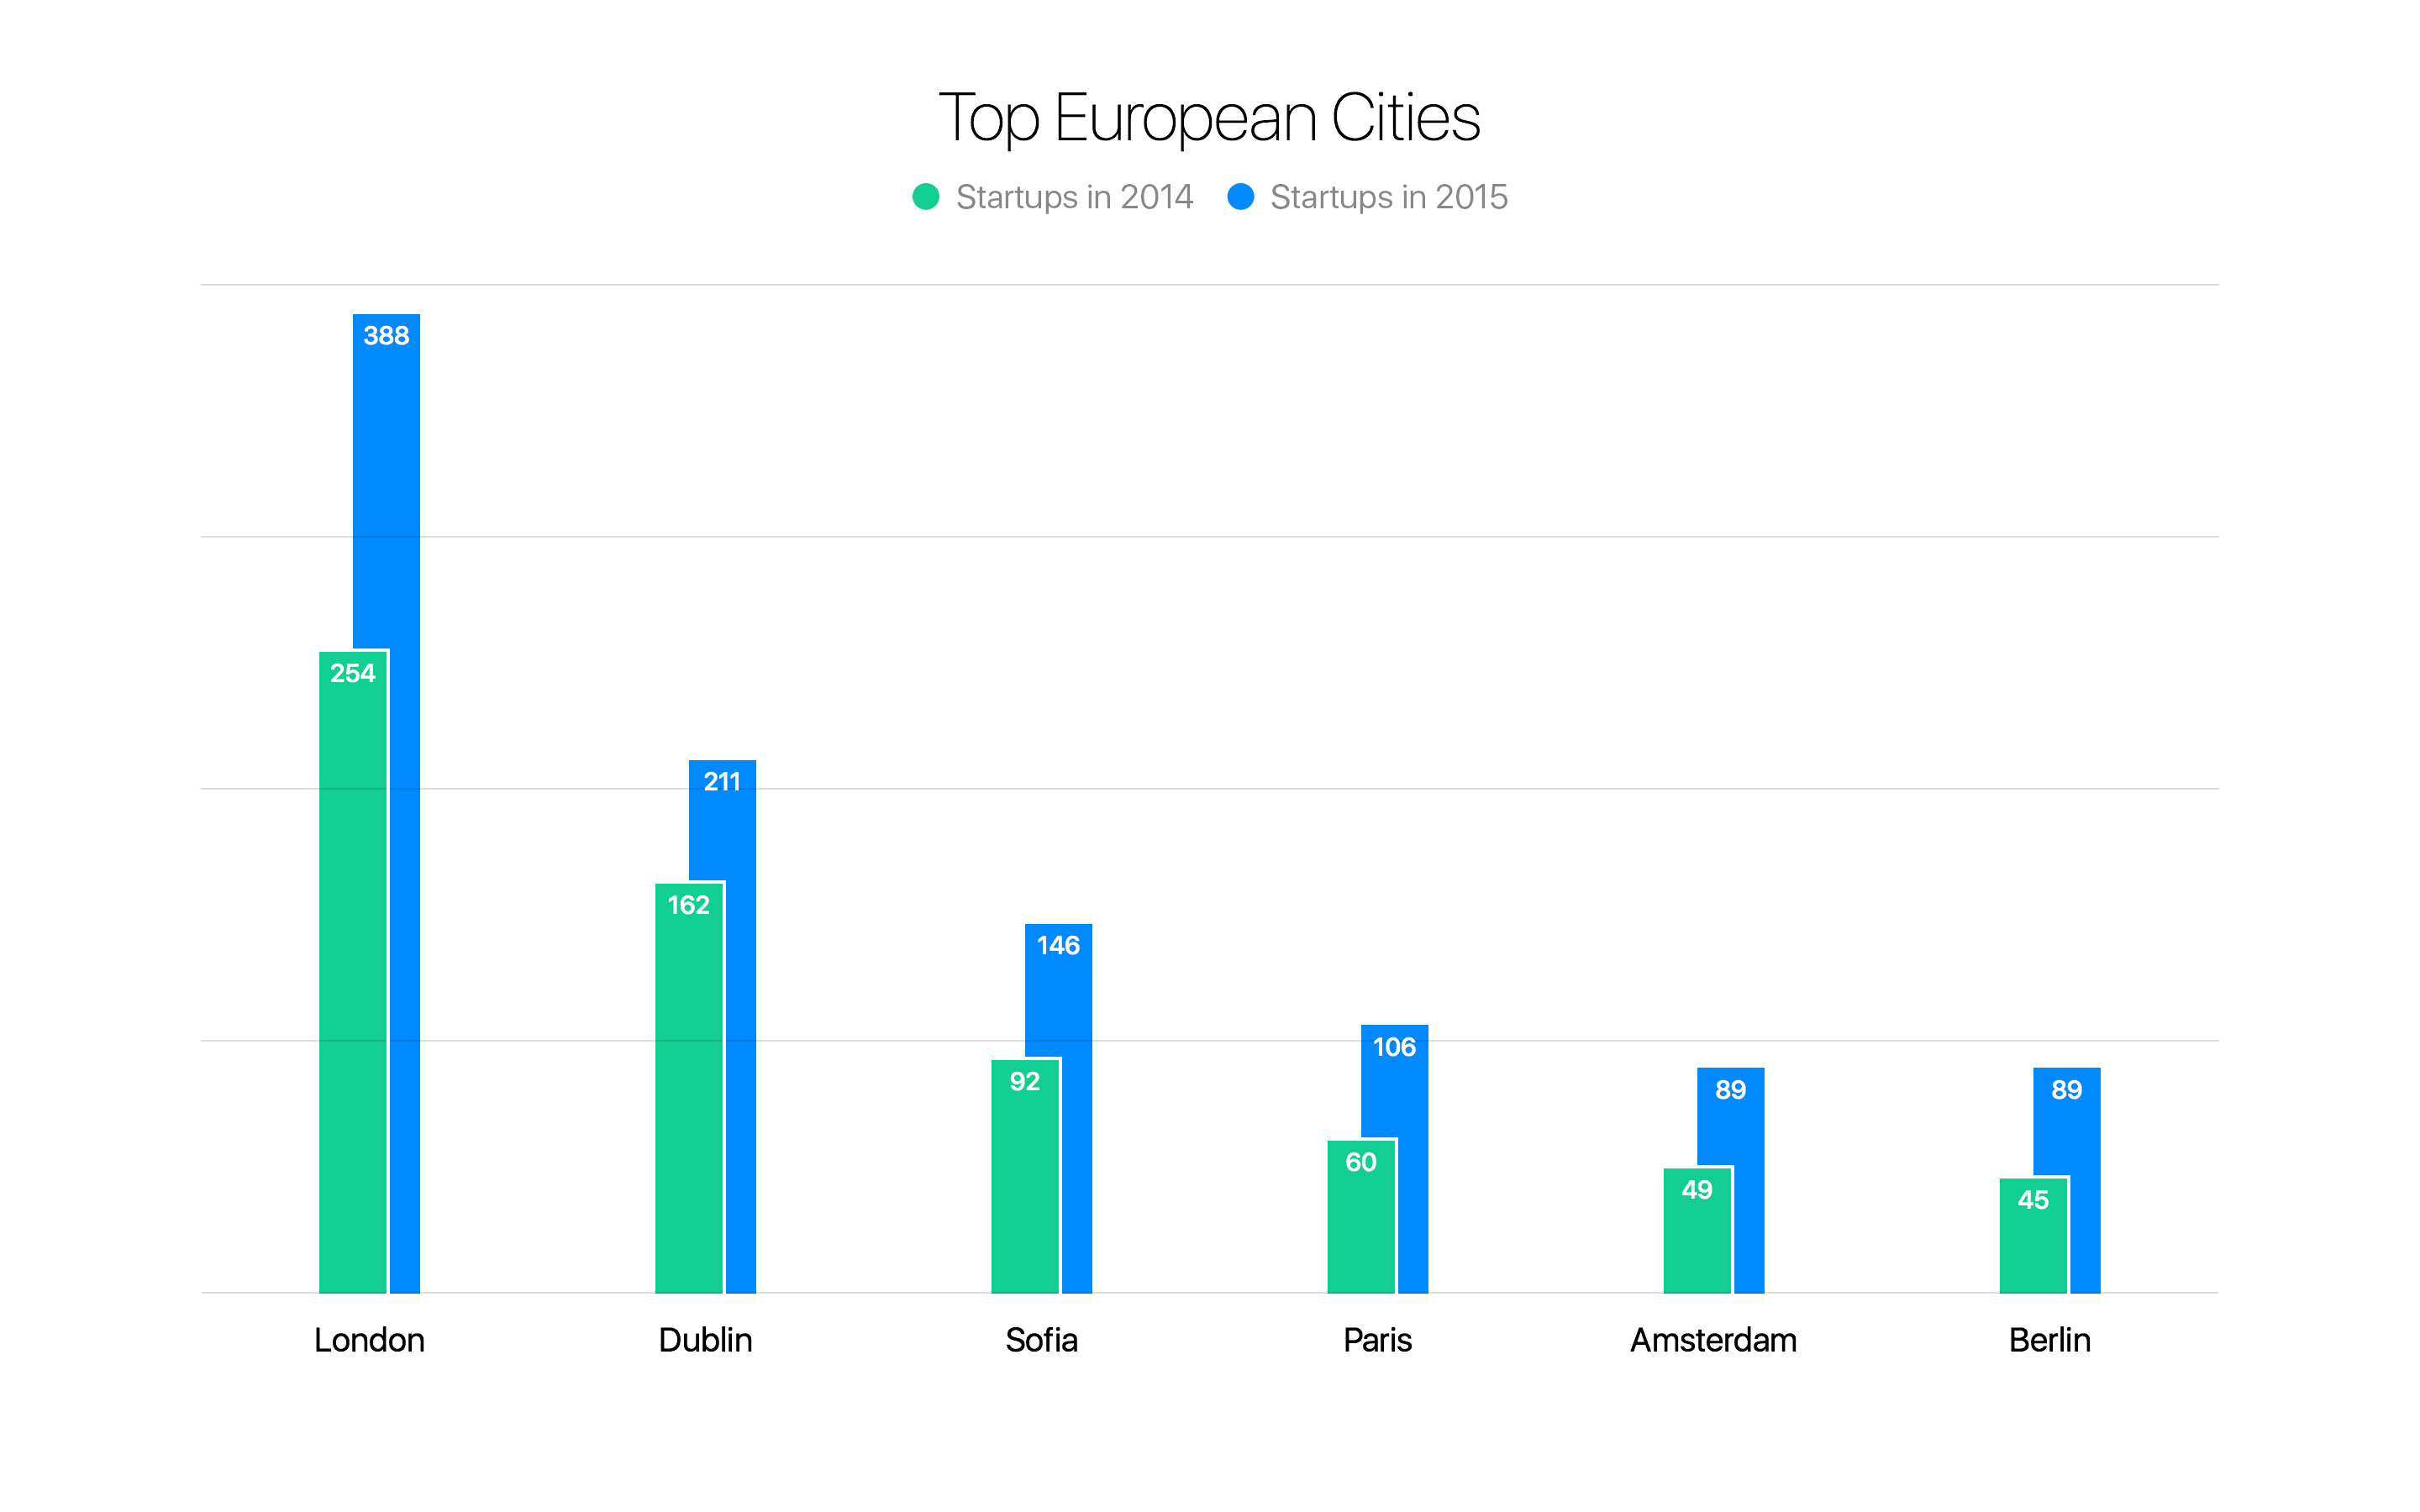 Top Cities by Number of Accelerated Startups 2014